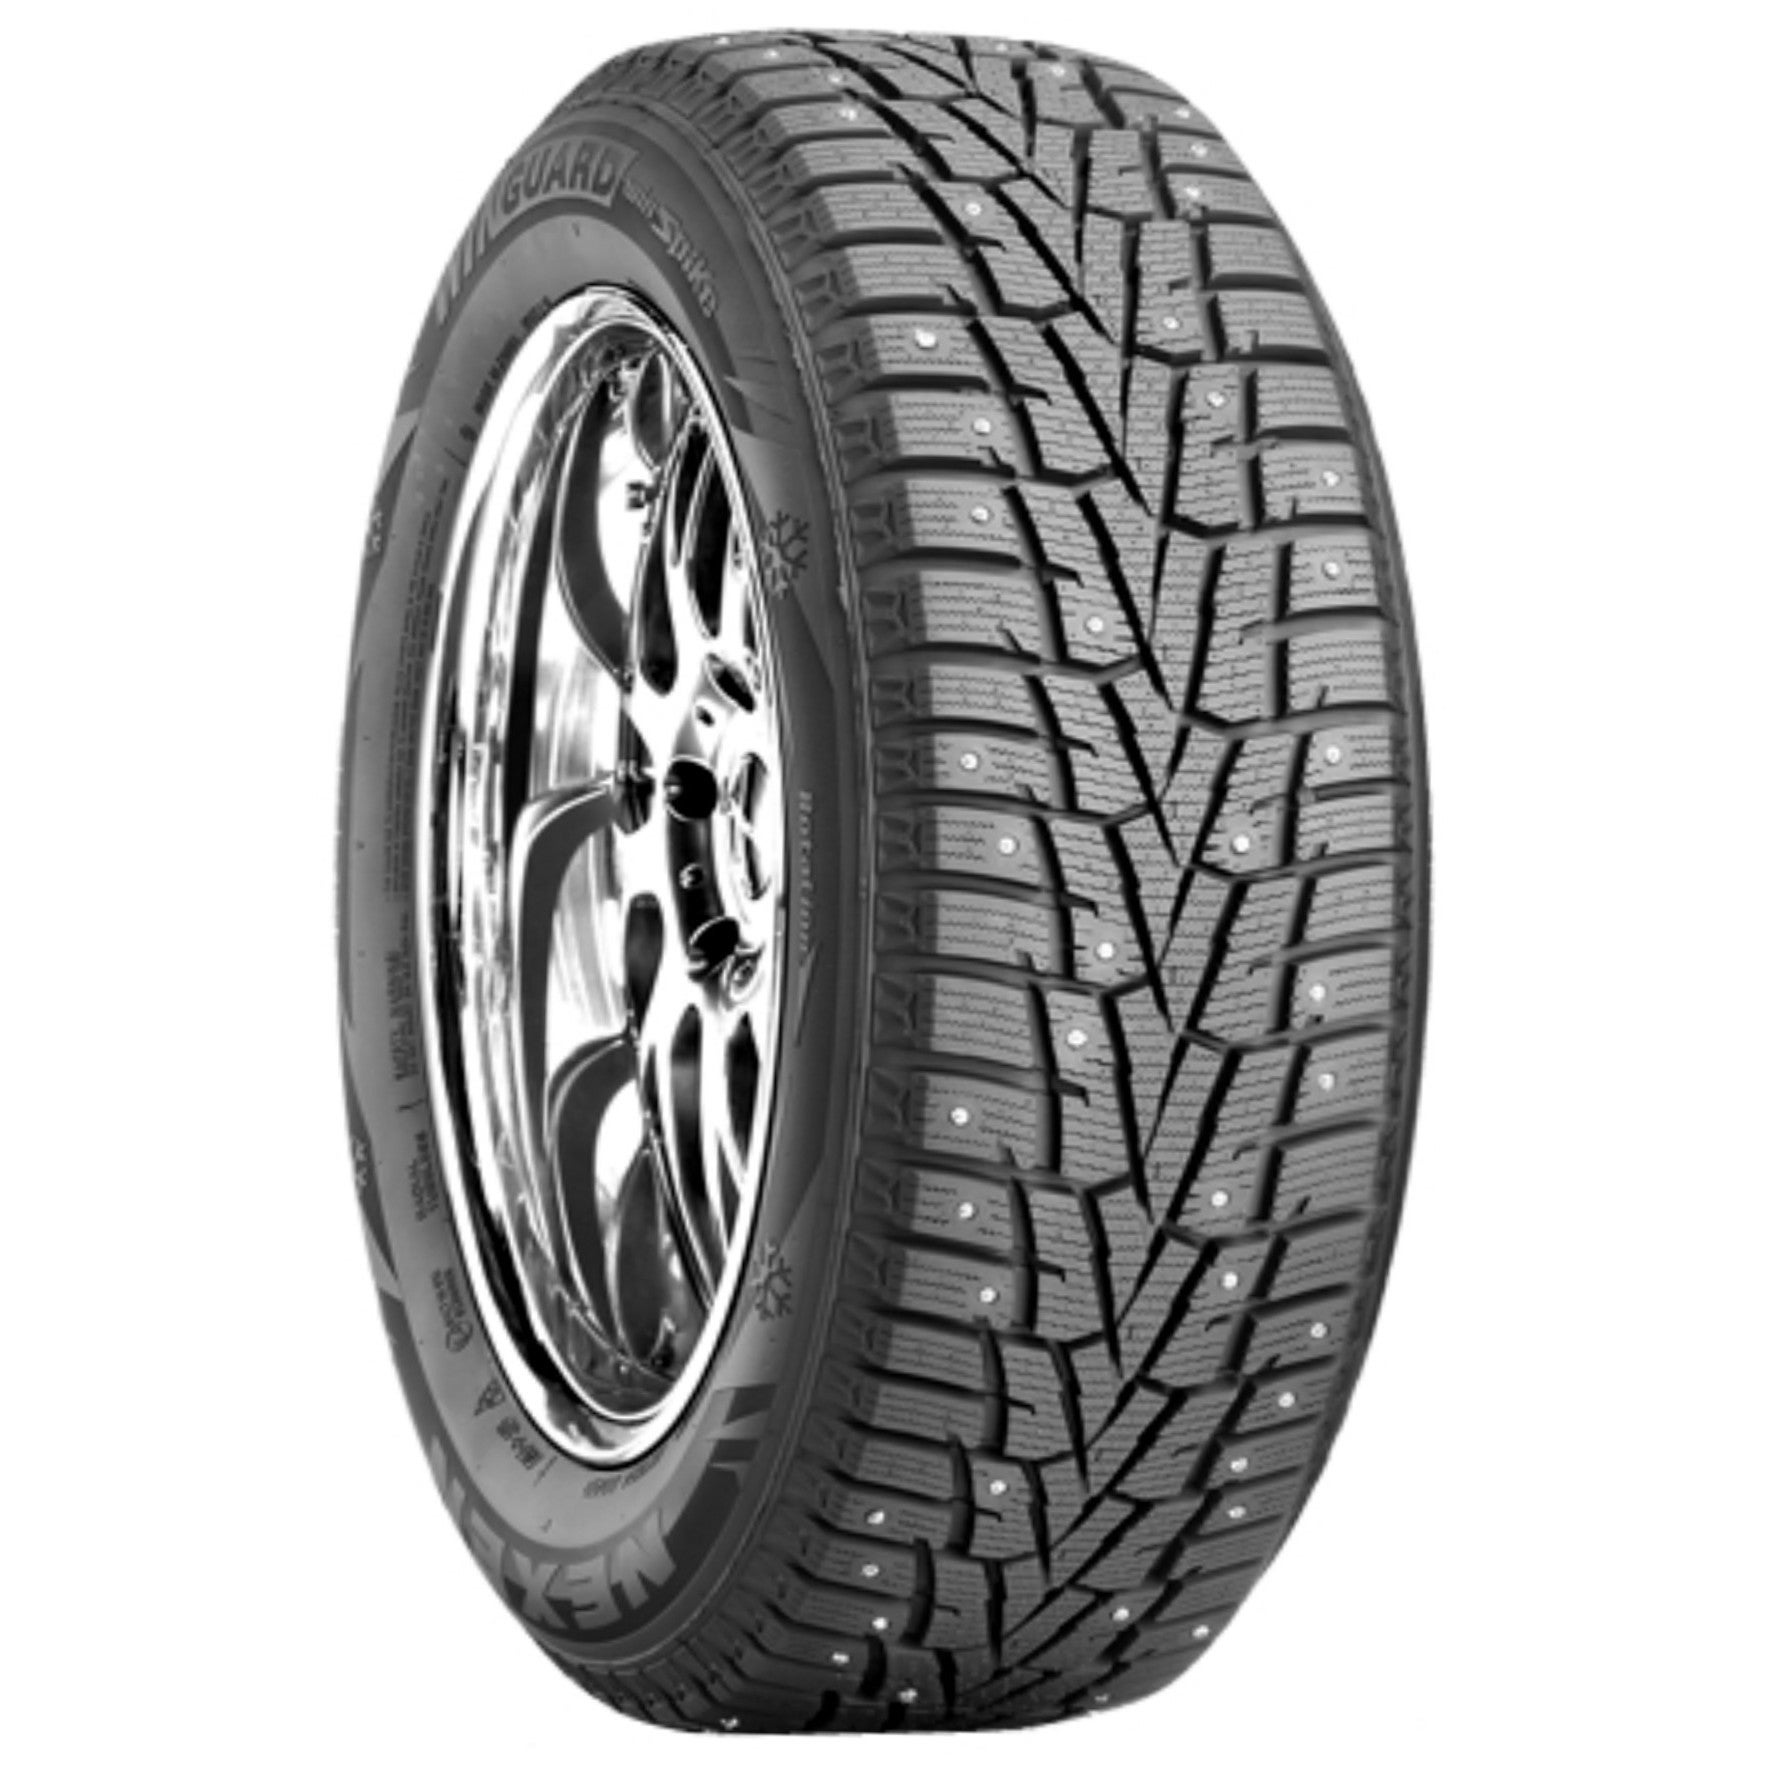 Nexen Winguard Winspike Winter Tire - LT235/80R17 LRE/10 ...